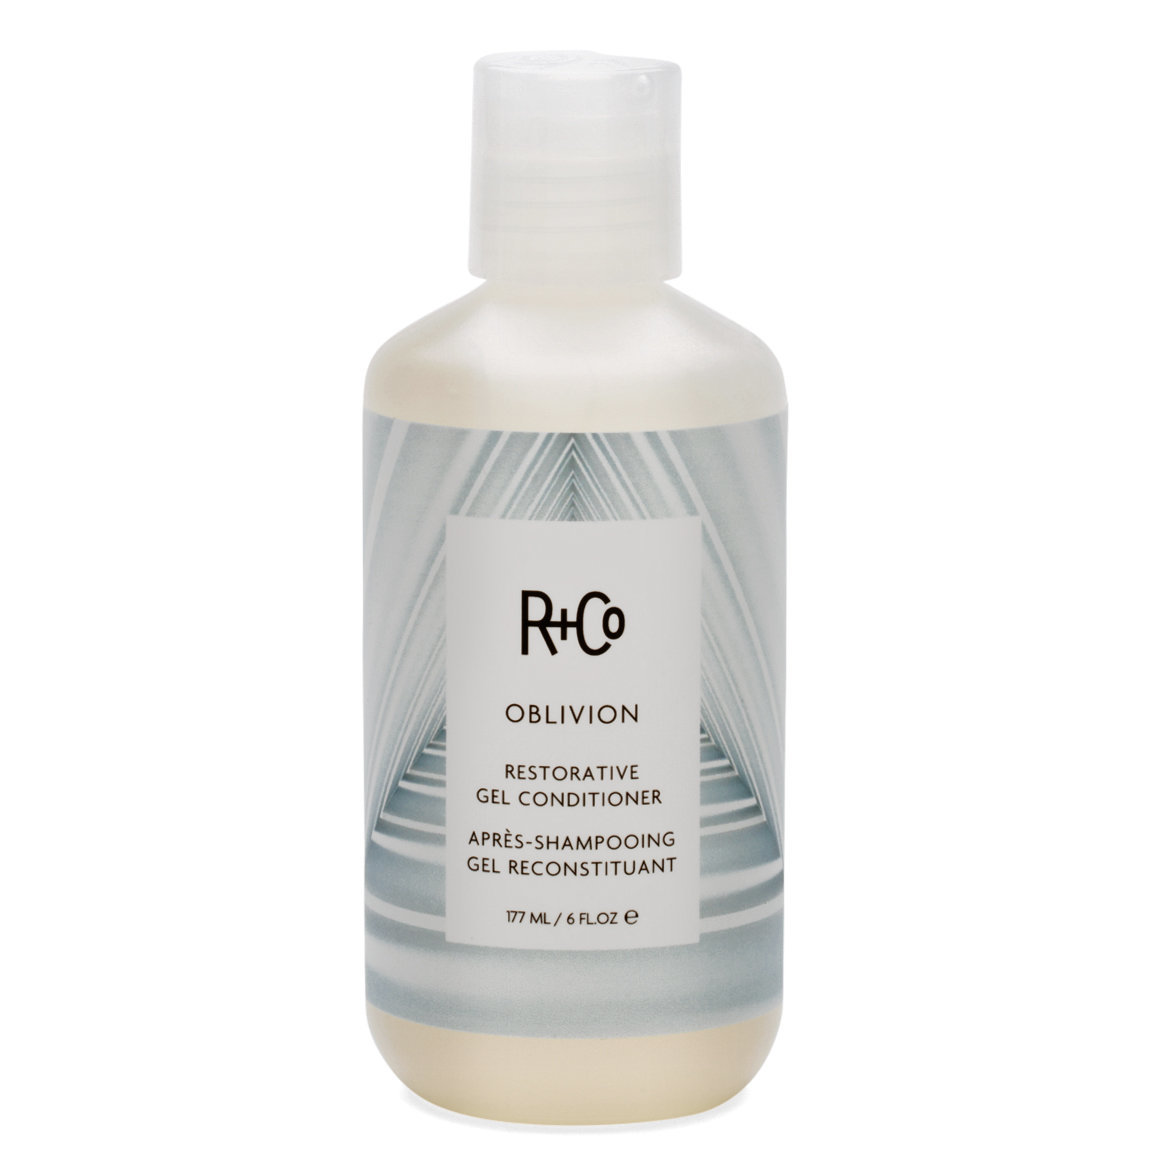 R+Co Oblivion Restorative Gel Conditioner alternative view 1 - product swatch.